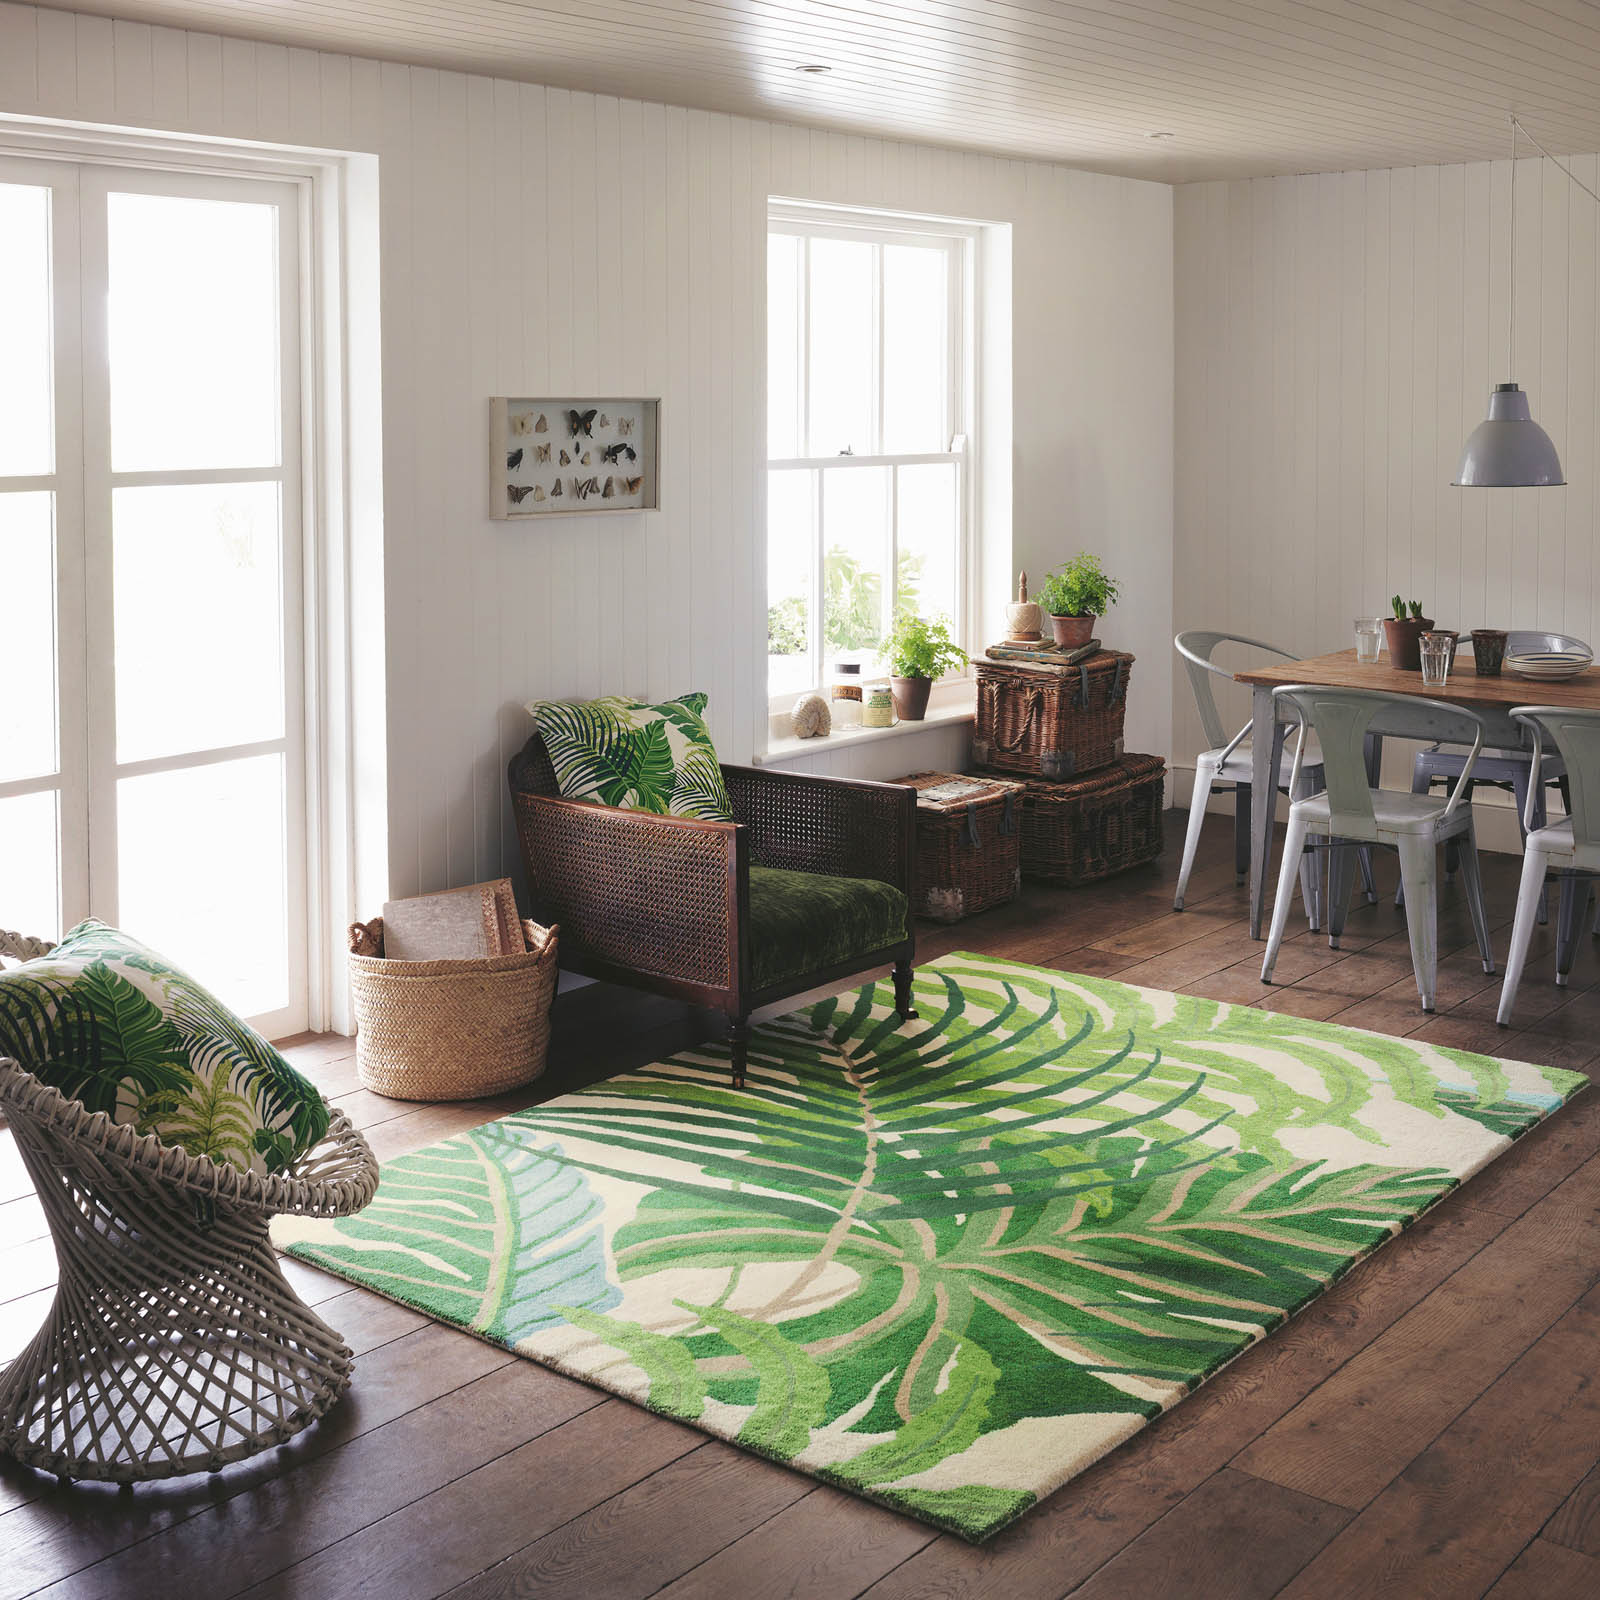 Sanderson Manila Rugs 46407 in Green